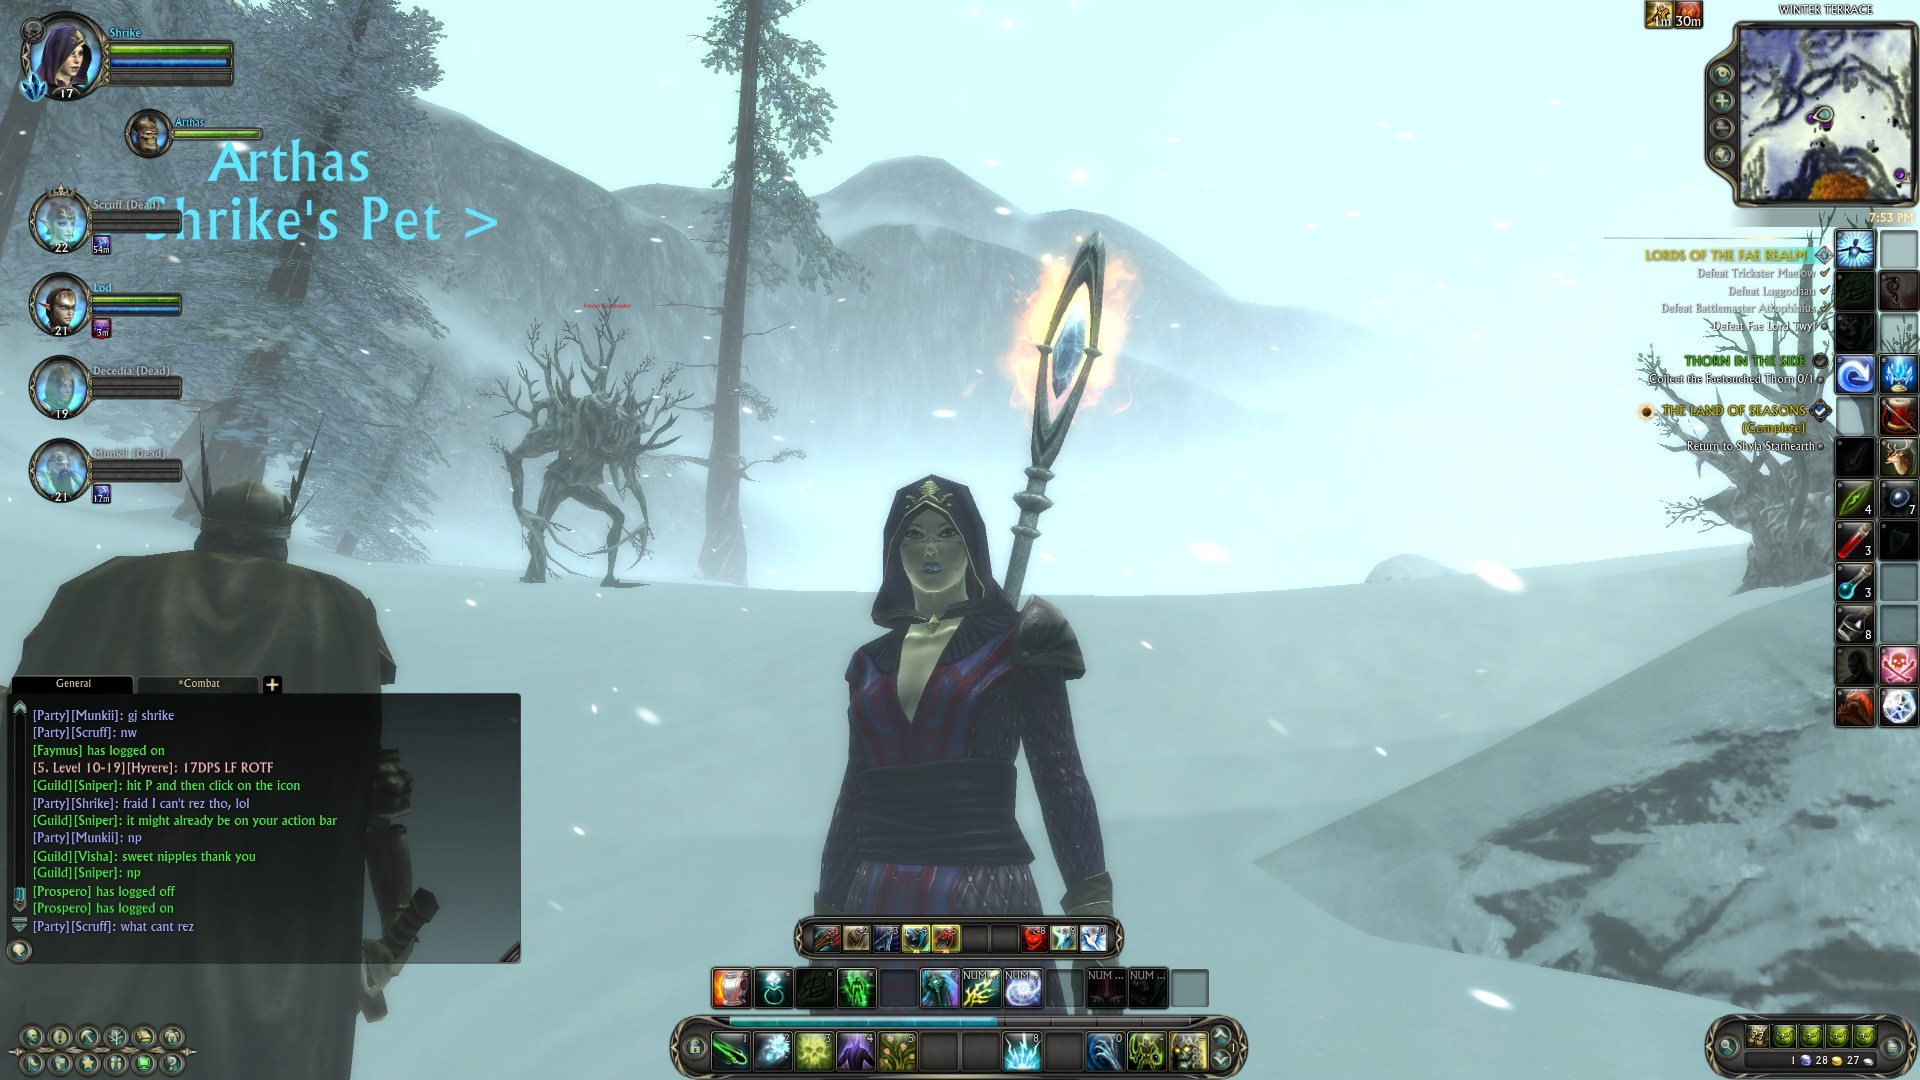 Rift - Waiting for my group to come back in the blustering snow